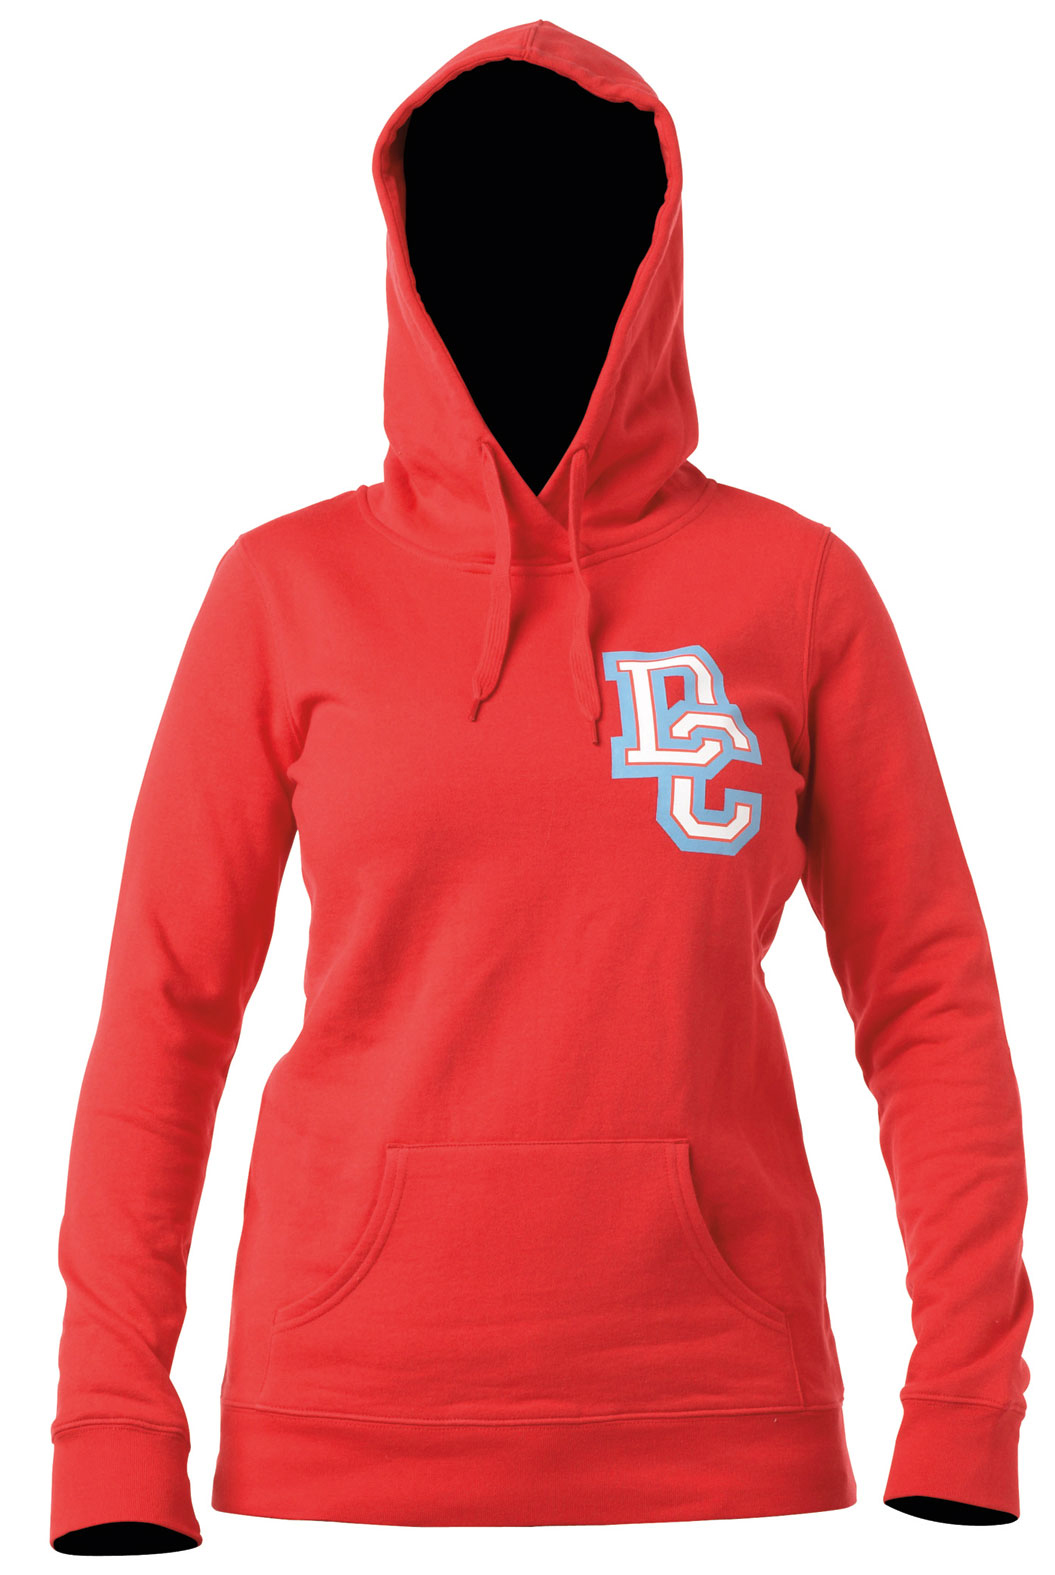 Skateboard Long fleece pullover hood with athletic dc logo print on body.Key Features of the DC Bachelorette Hoodie: Fit: long ph 80%cotton / 20% polyester 280g fleece - $33.95